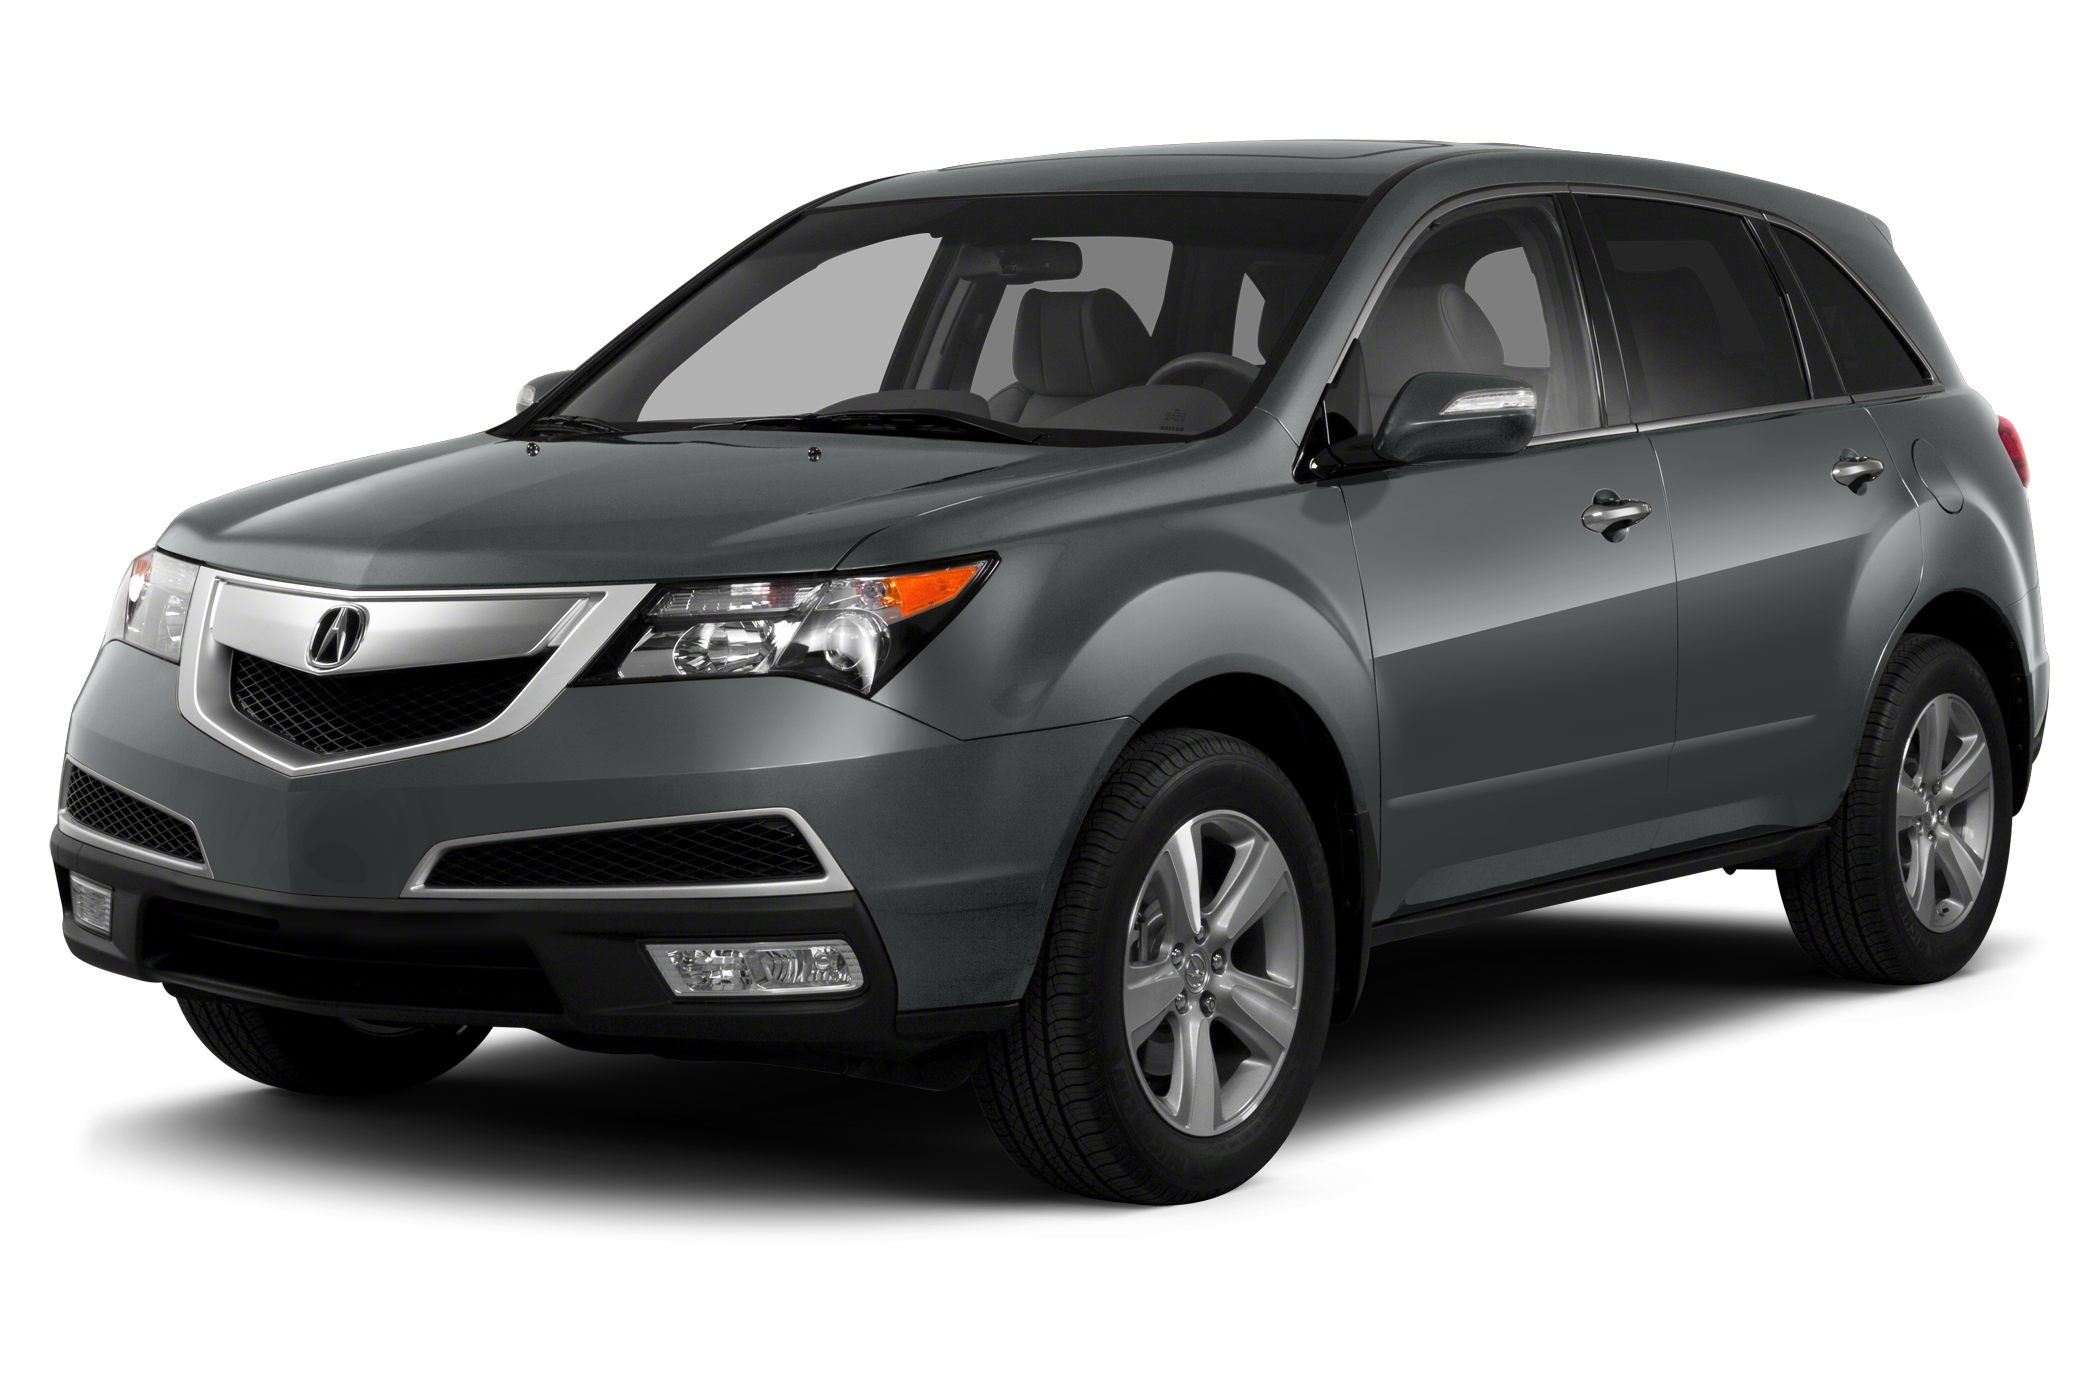 2013 Acura Mdx 3 7l Technology Package 4dr All Wheel Drive Specs And Prices